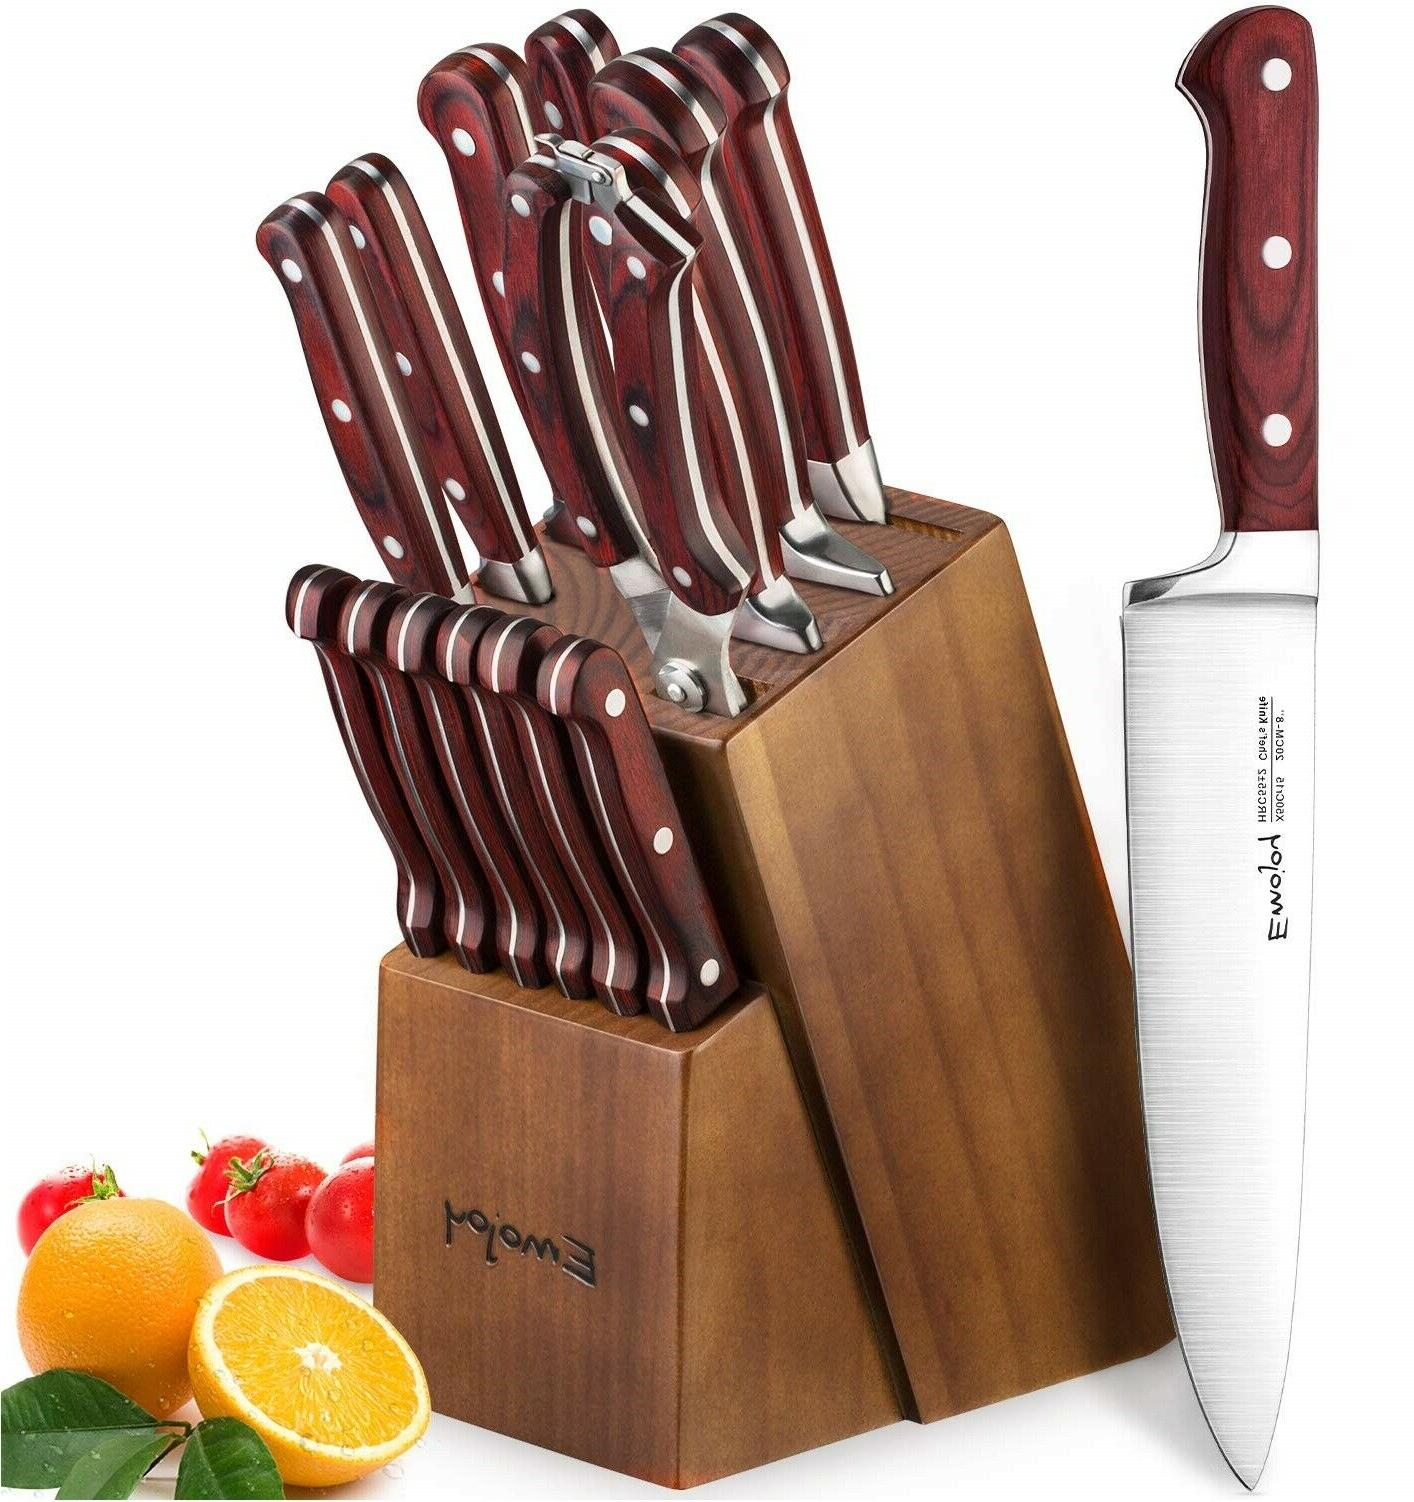 15 pieces german stainless steel kitchen knife